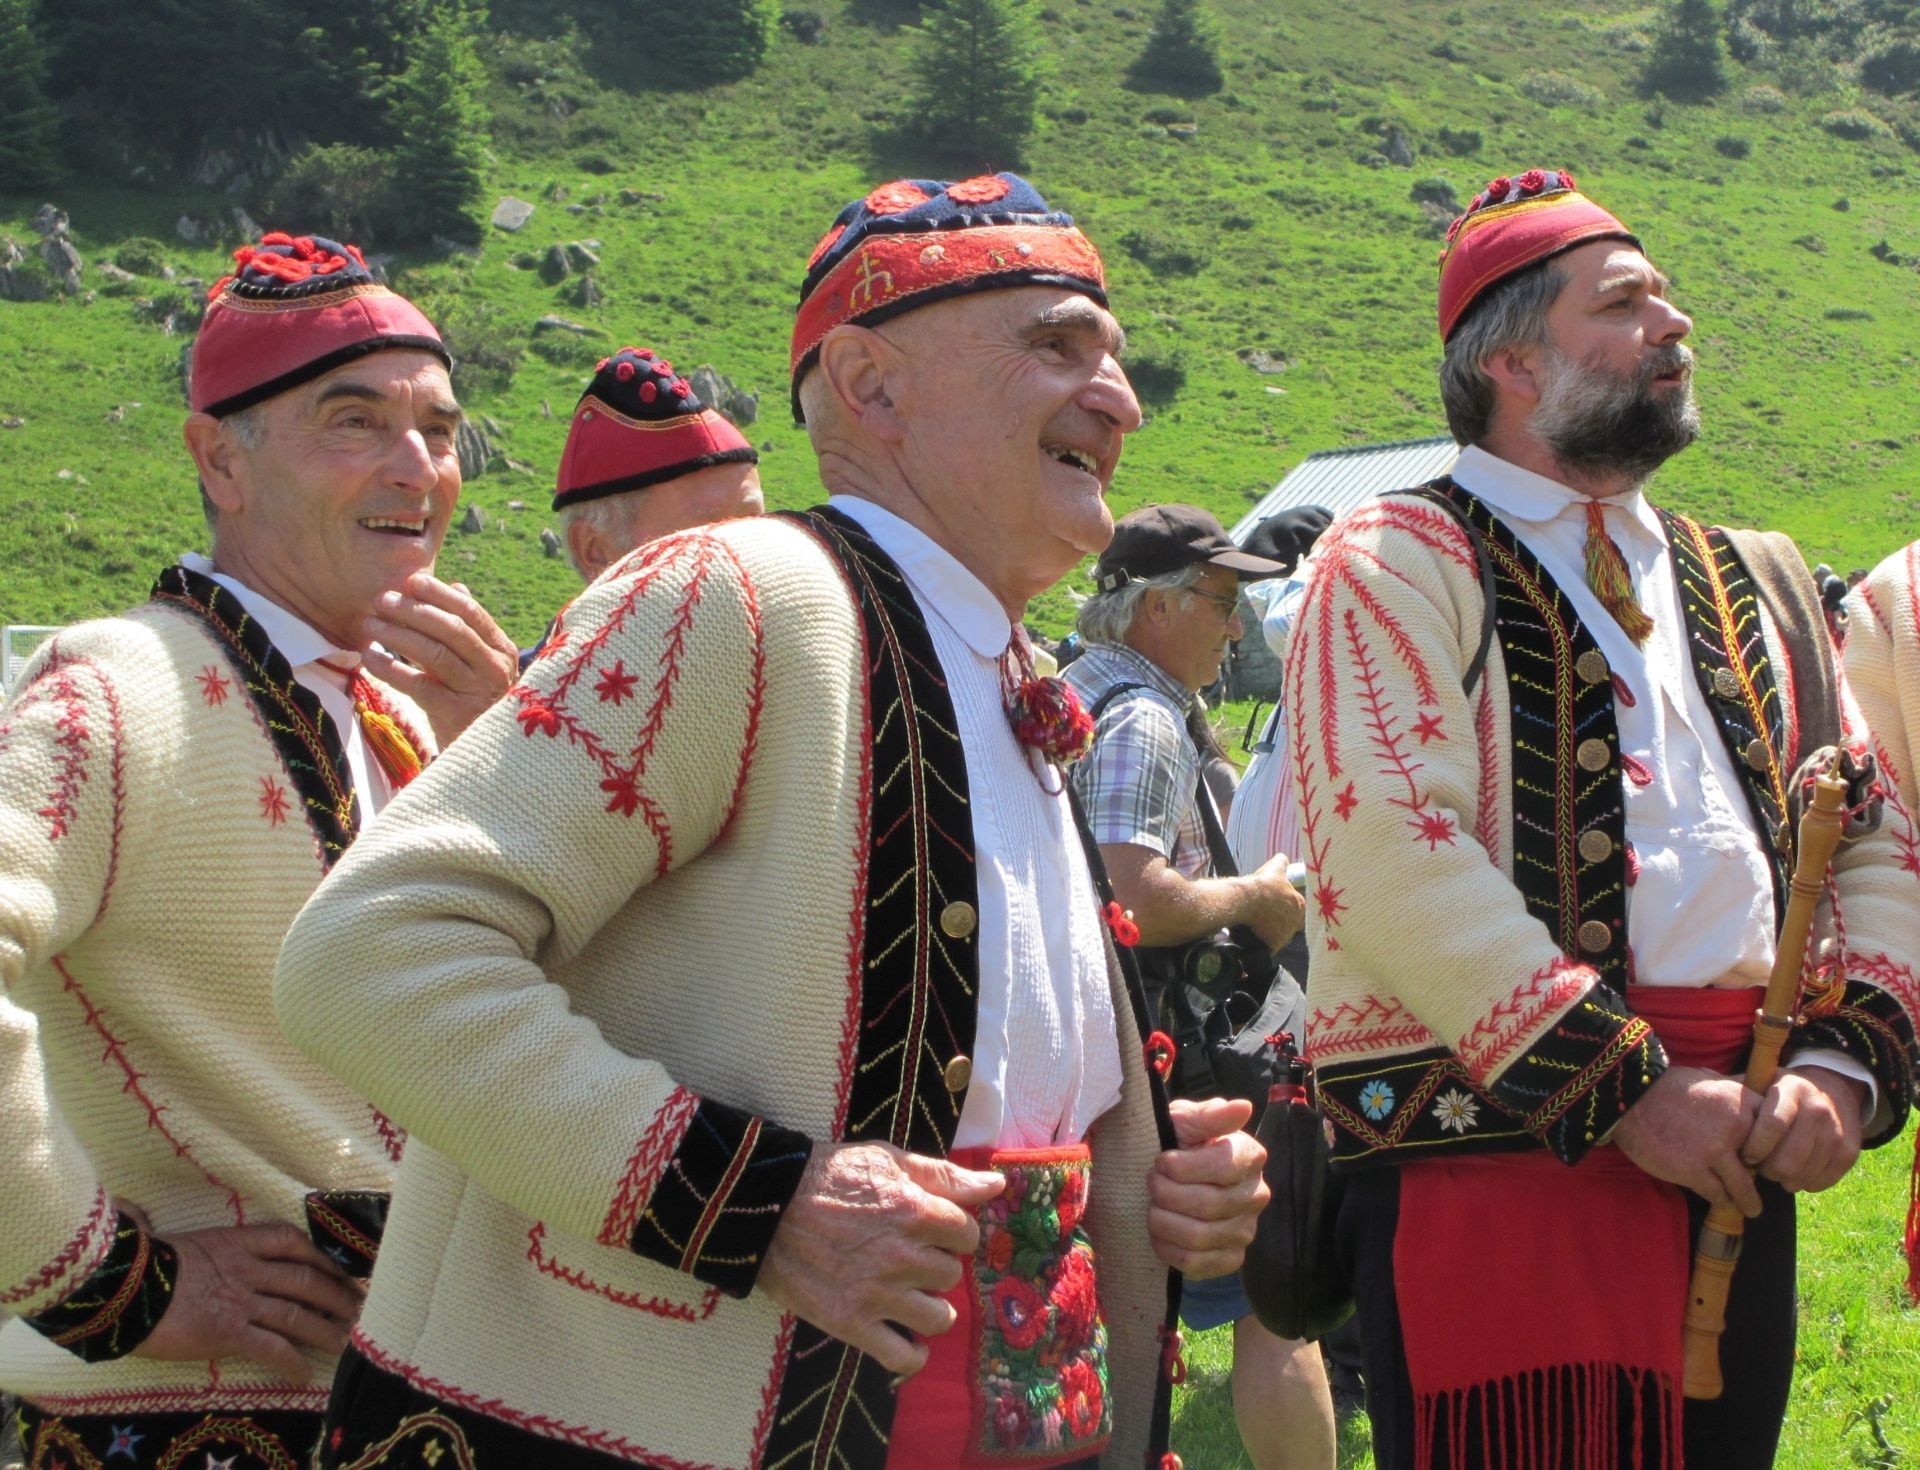 Transhumance traditional singers in French Pyrenees